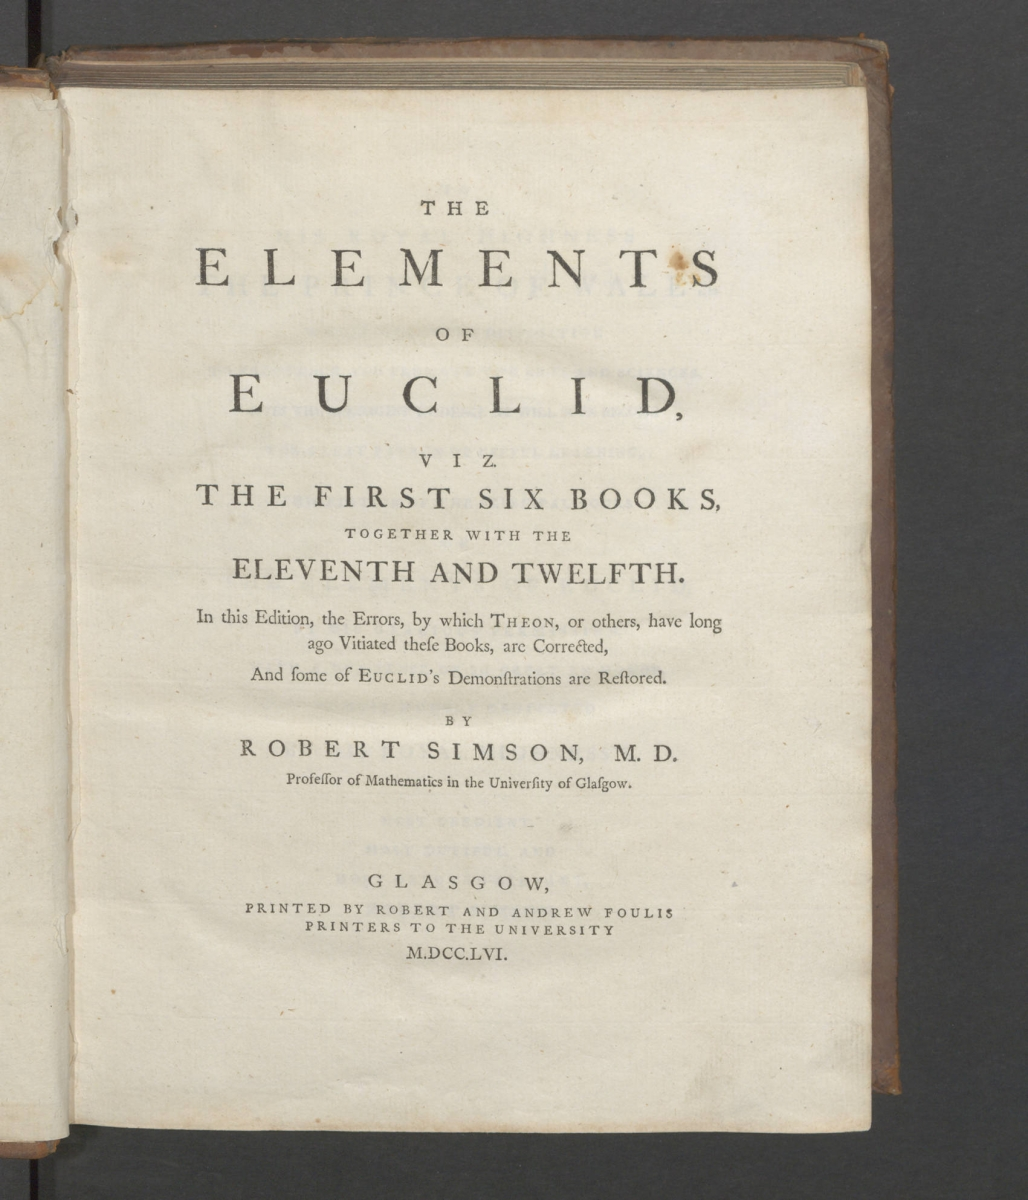 Title page of Robert Simson's 1756 The Elements of Euclid.